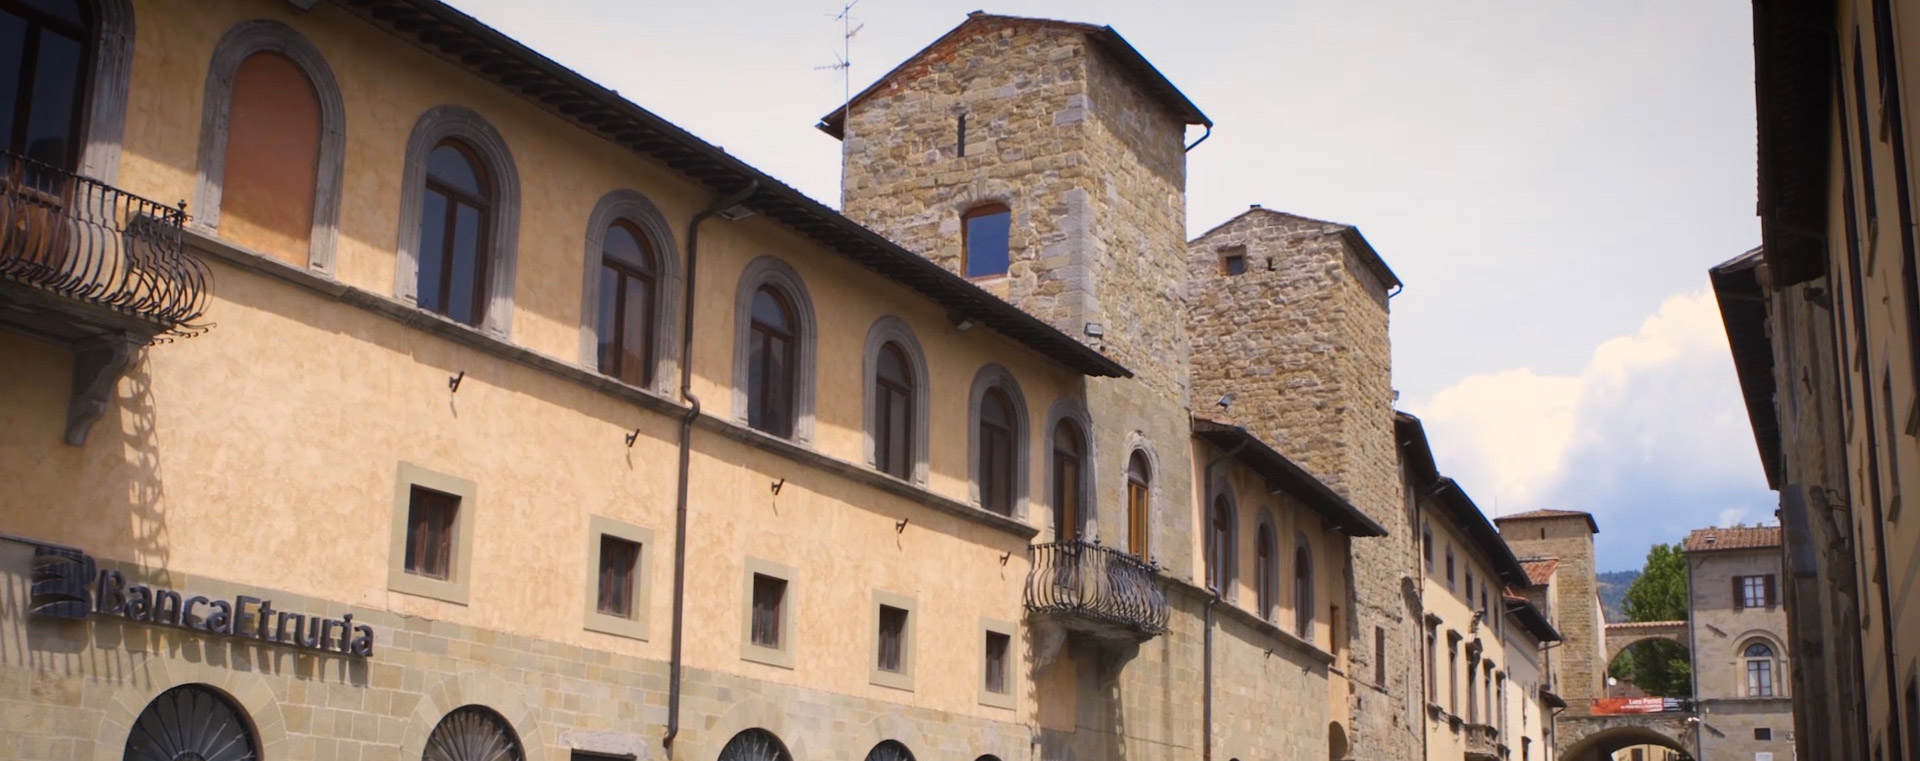 Come to live in a small historical town in Tuscany